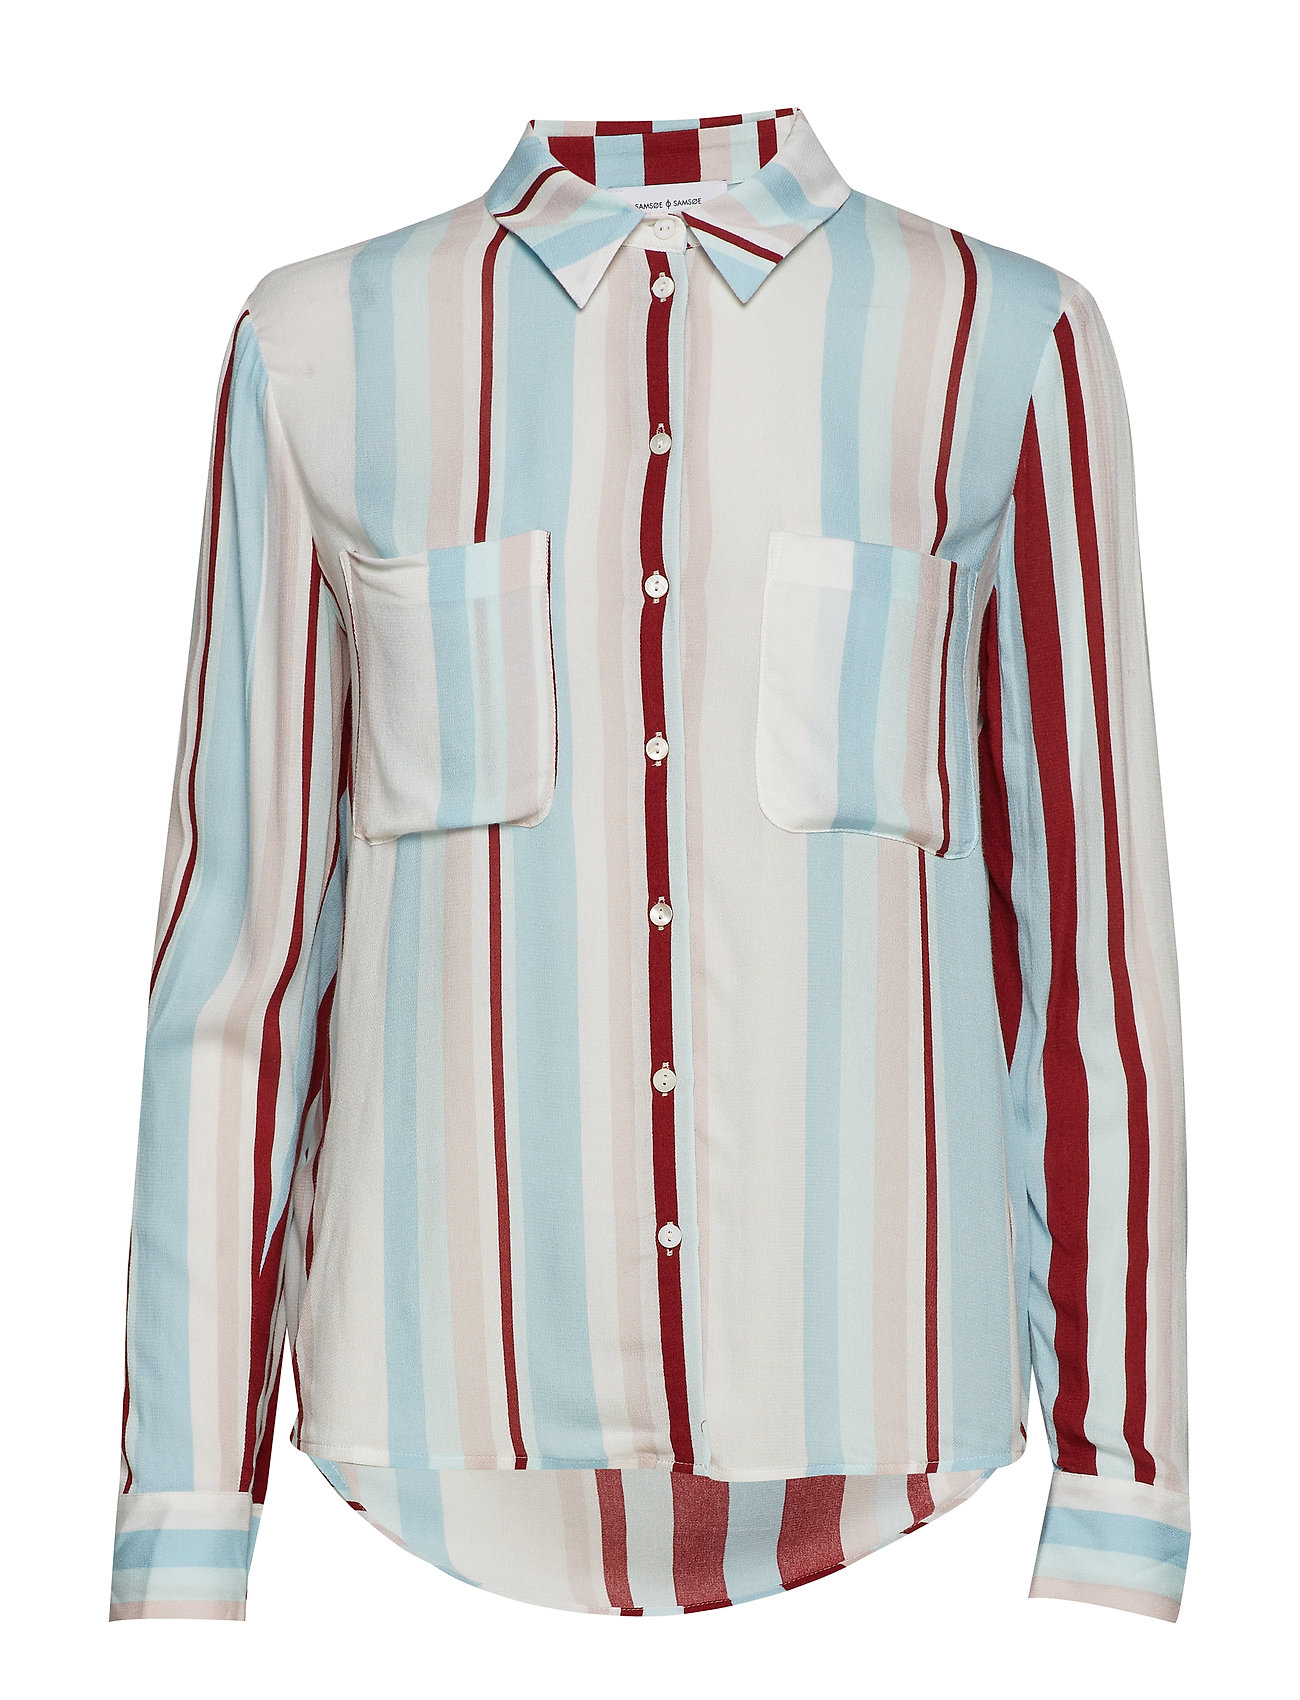 Samsøe & Samsøe Milly shirt aop 7201 - RED LINE